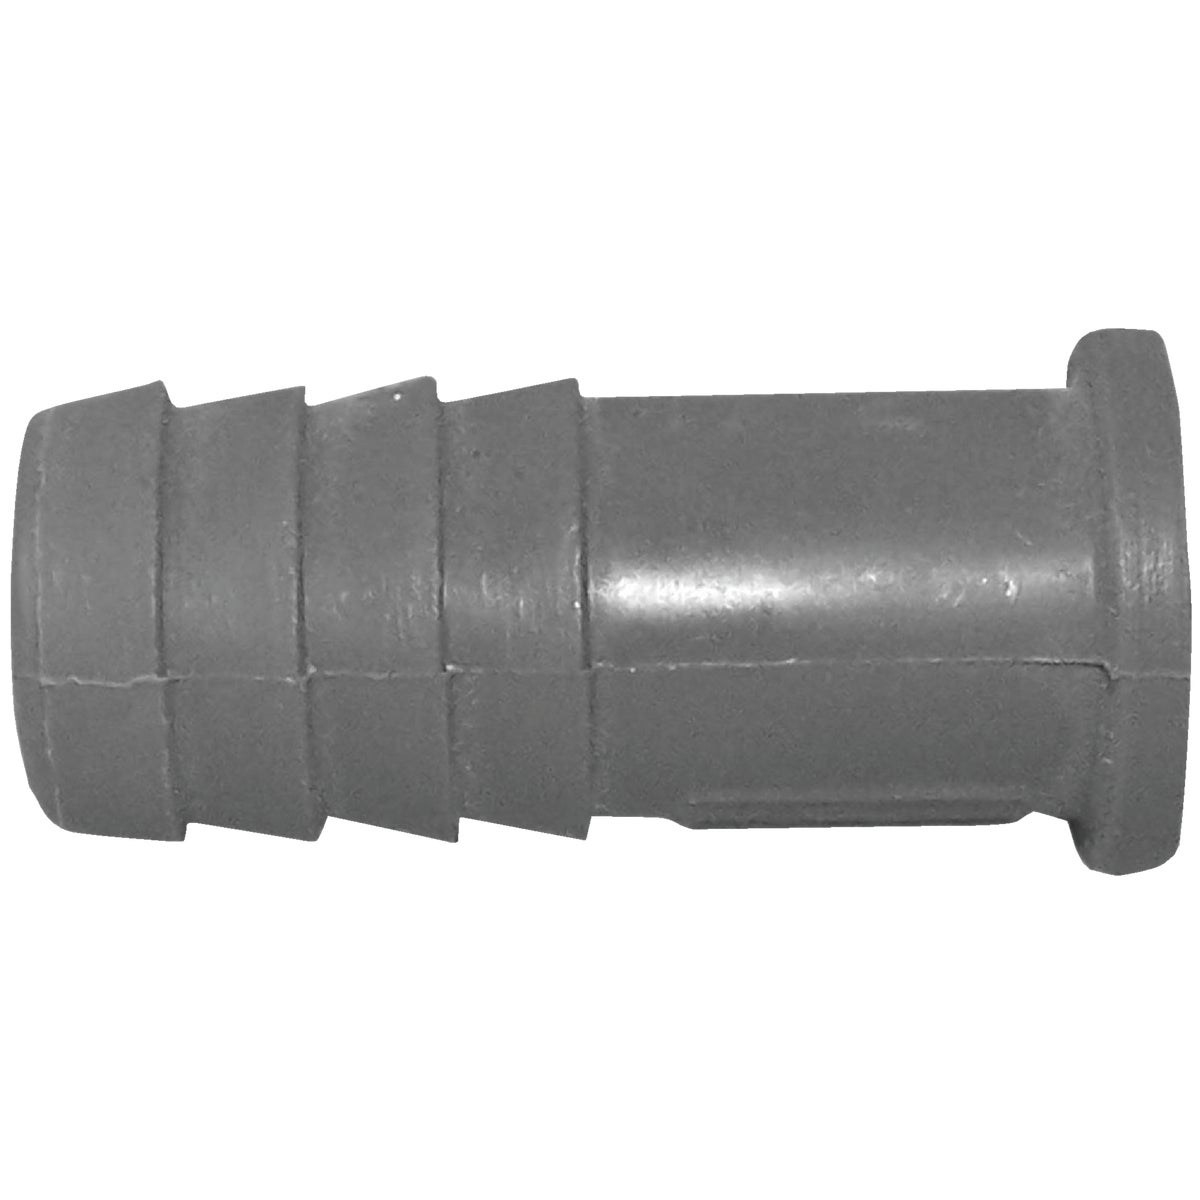 "1/2"" POLY INSERT PLUG - 351825 by Genova Inc"